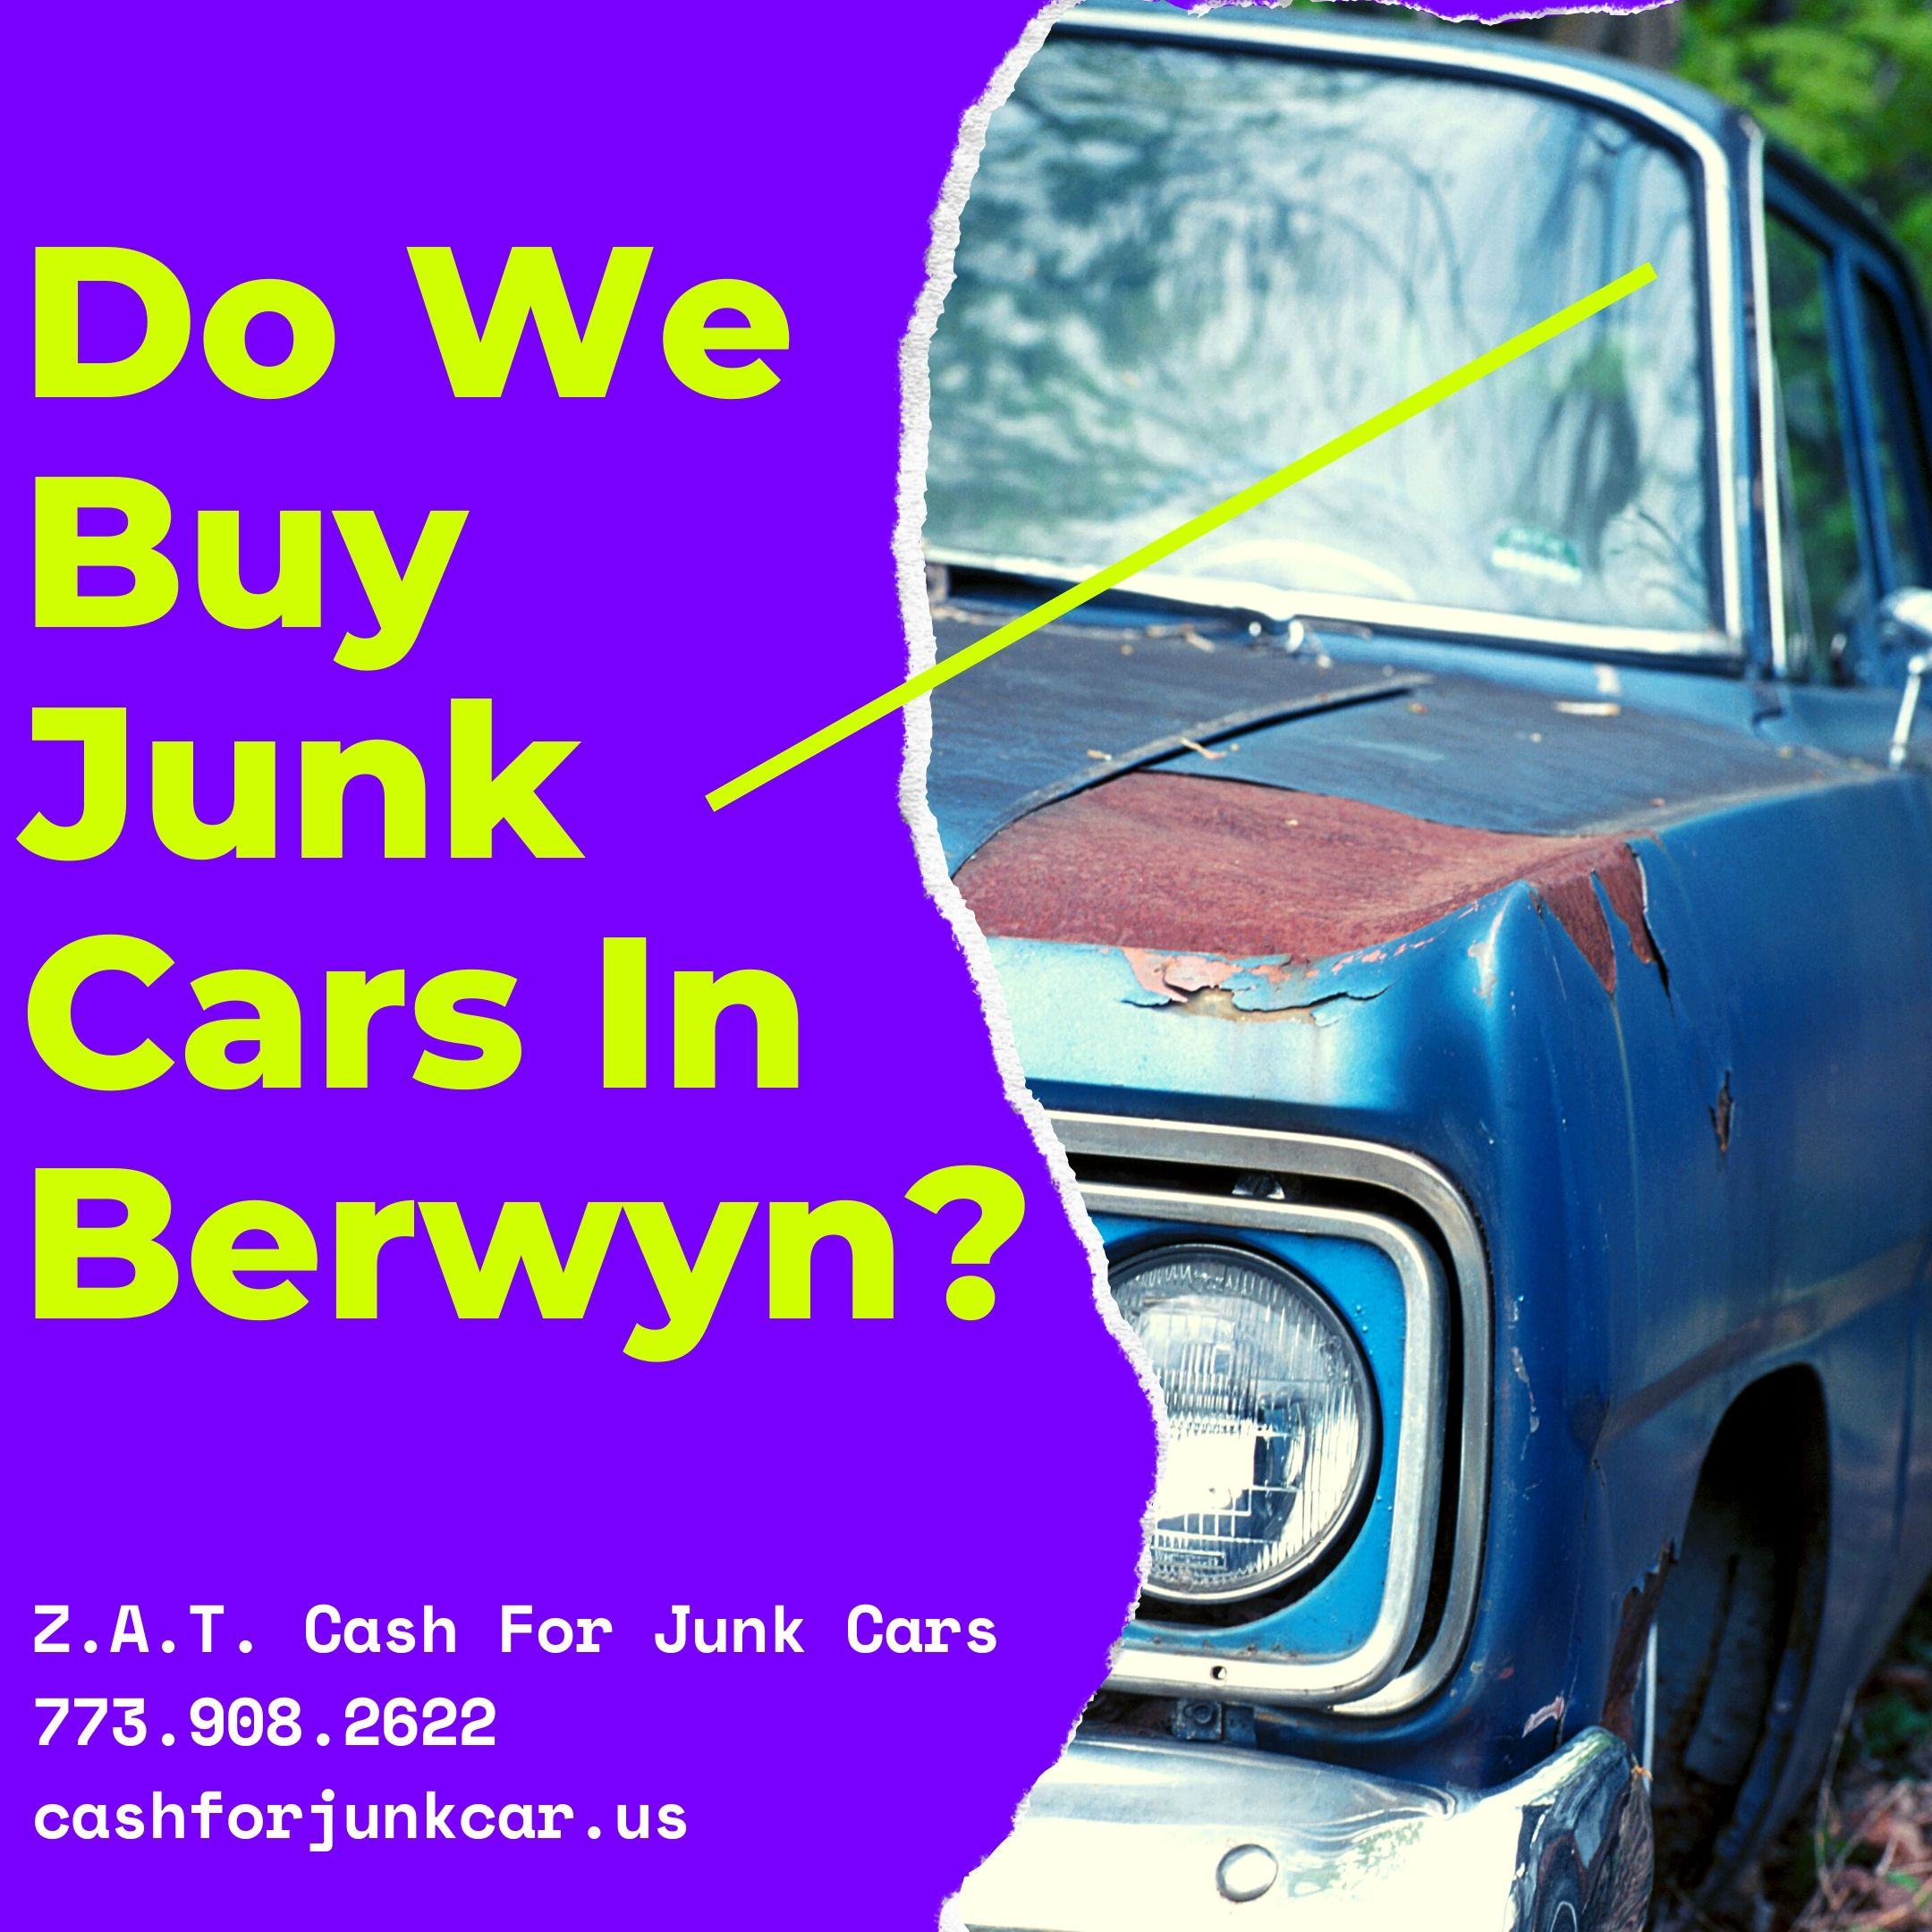 Do We Buy Junk Cars In Berwyn - Do We Buy Junk Cars In Berwyn?